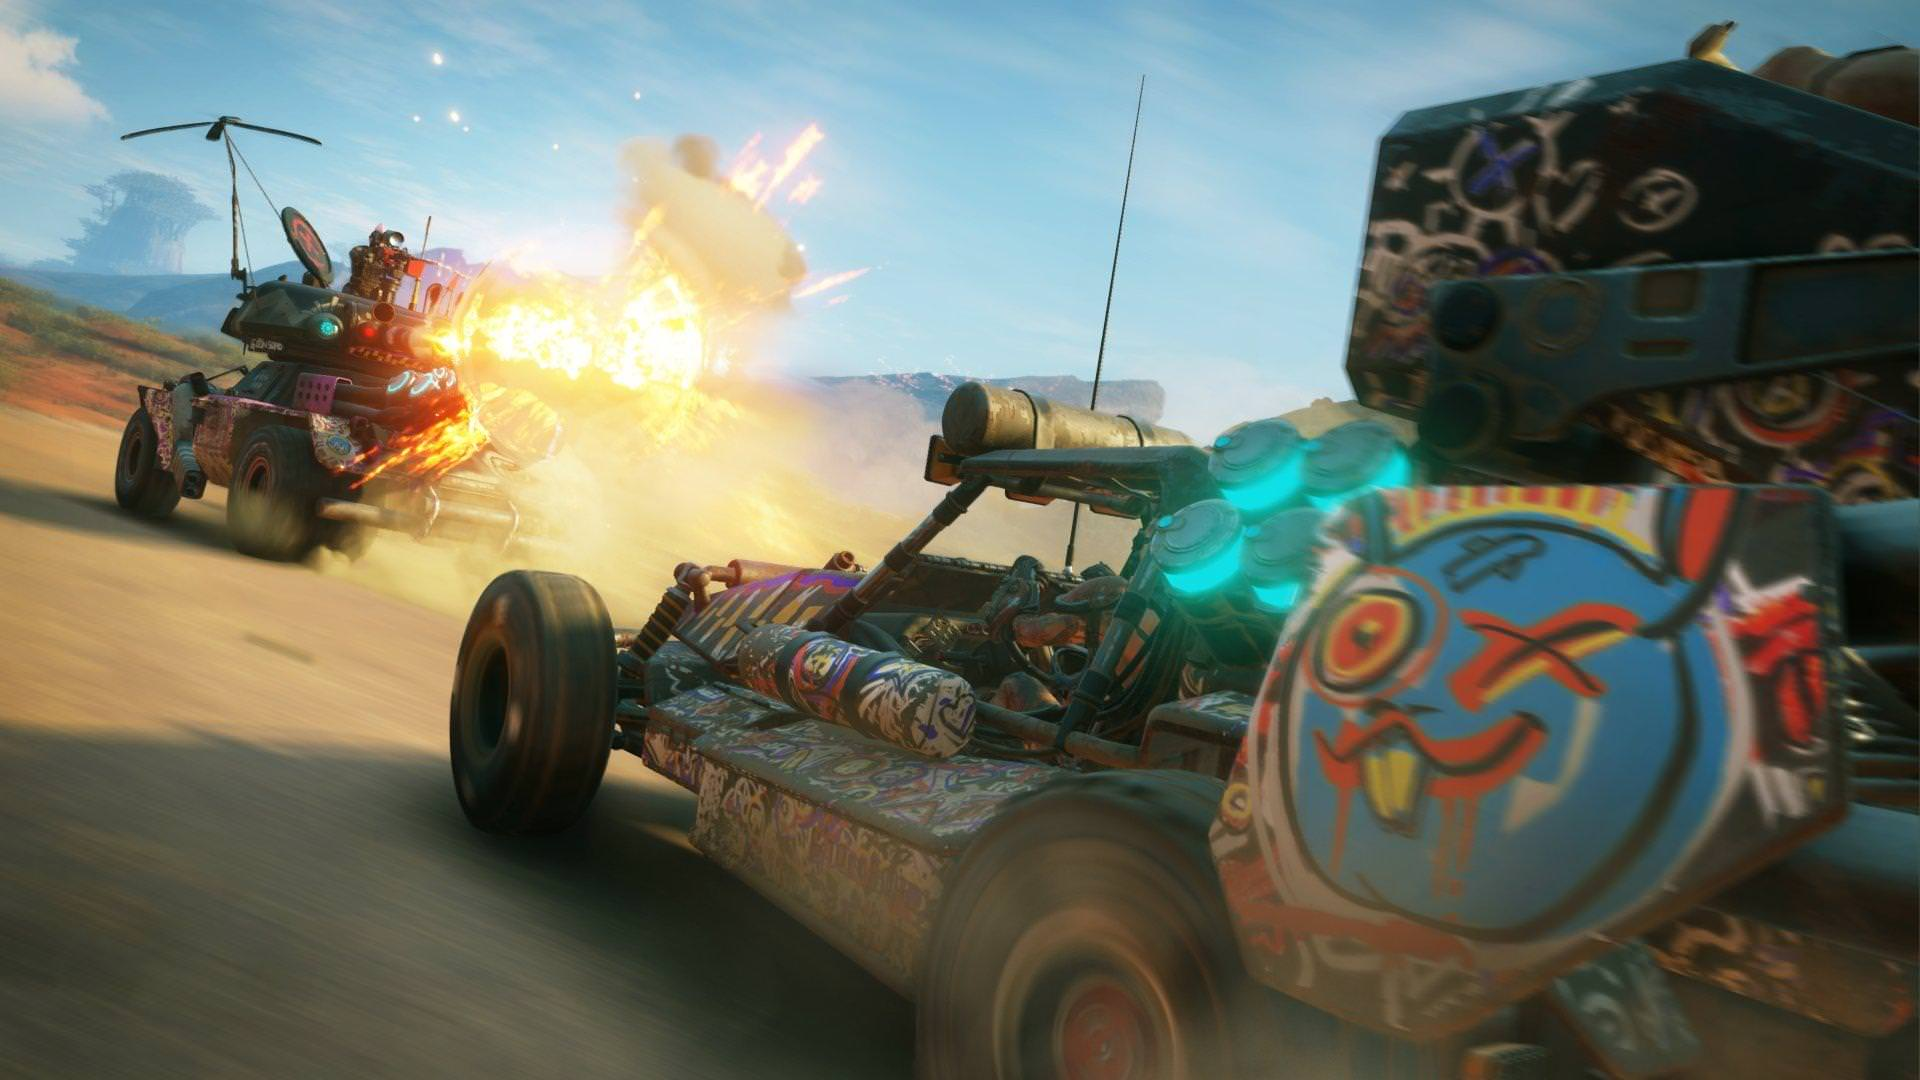 Rage 2 turns an apocalyptic wasteland into a frenetic shooting gallery screenshot